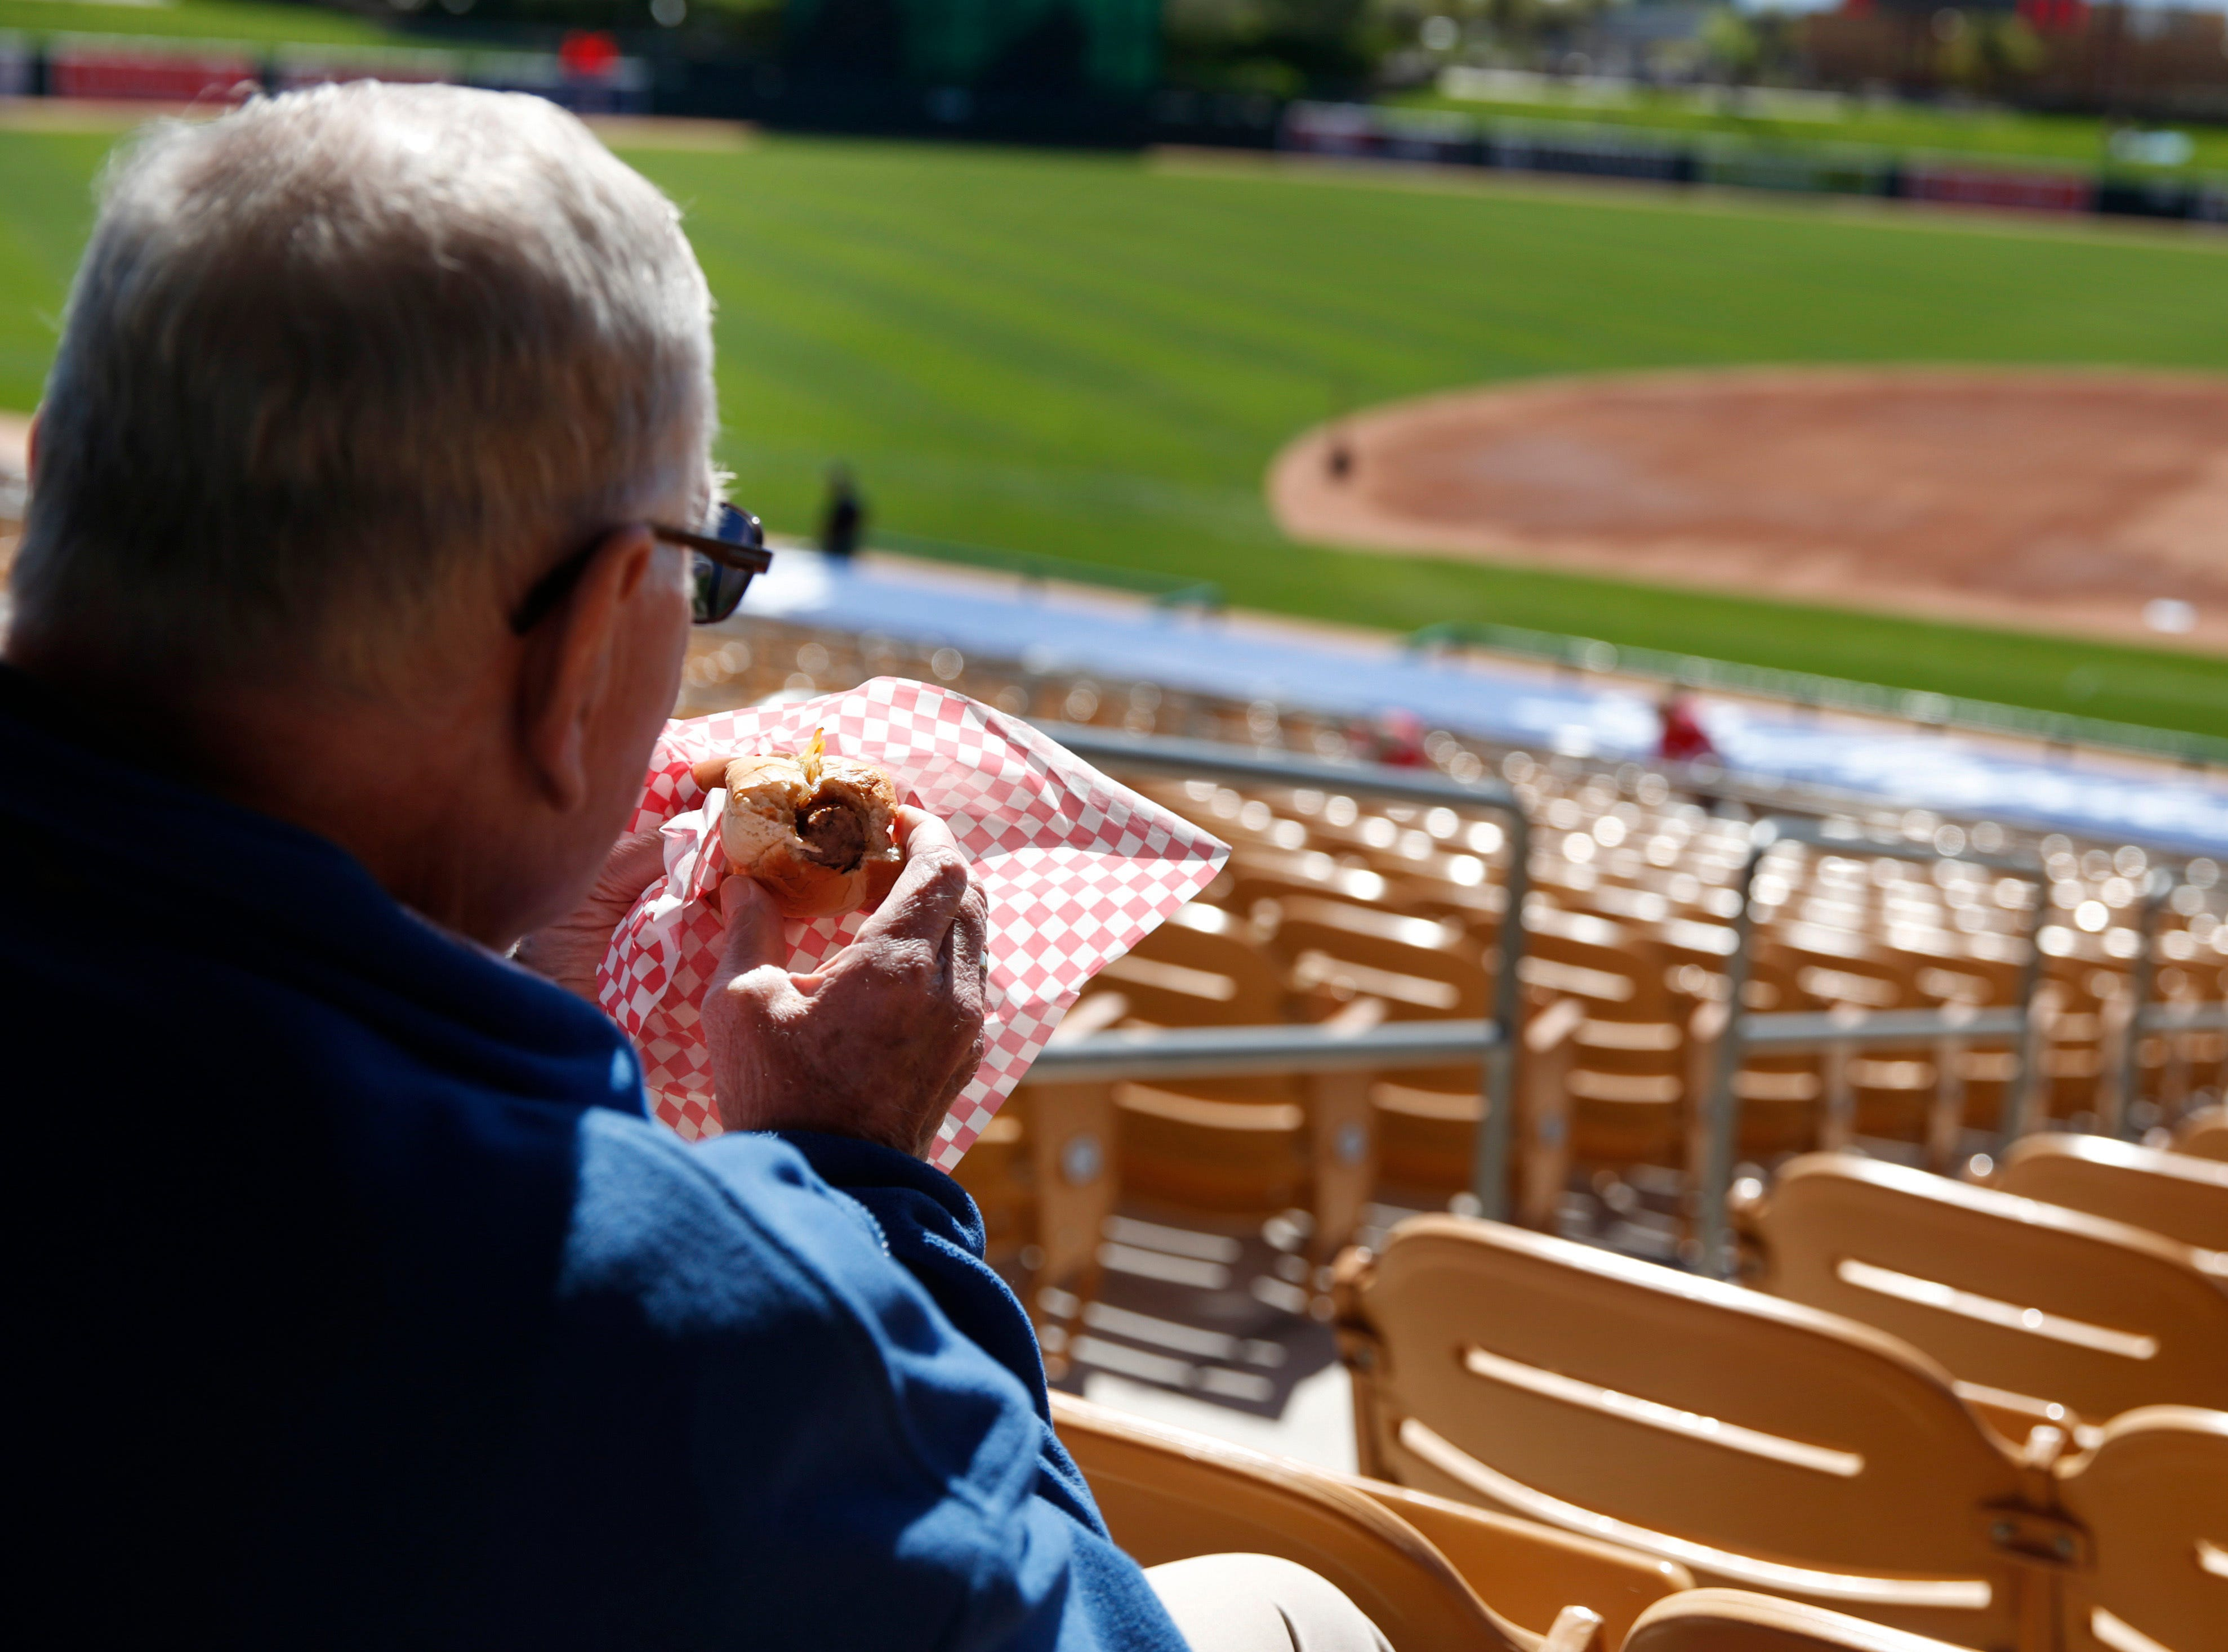 Tax law means businesses can deduct the hot dog, but not the ballgame